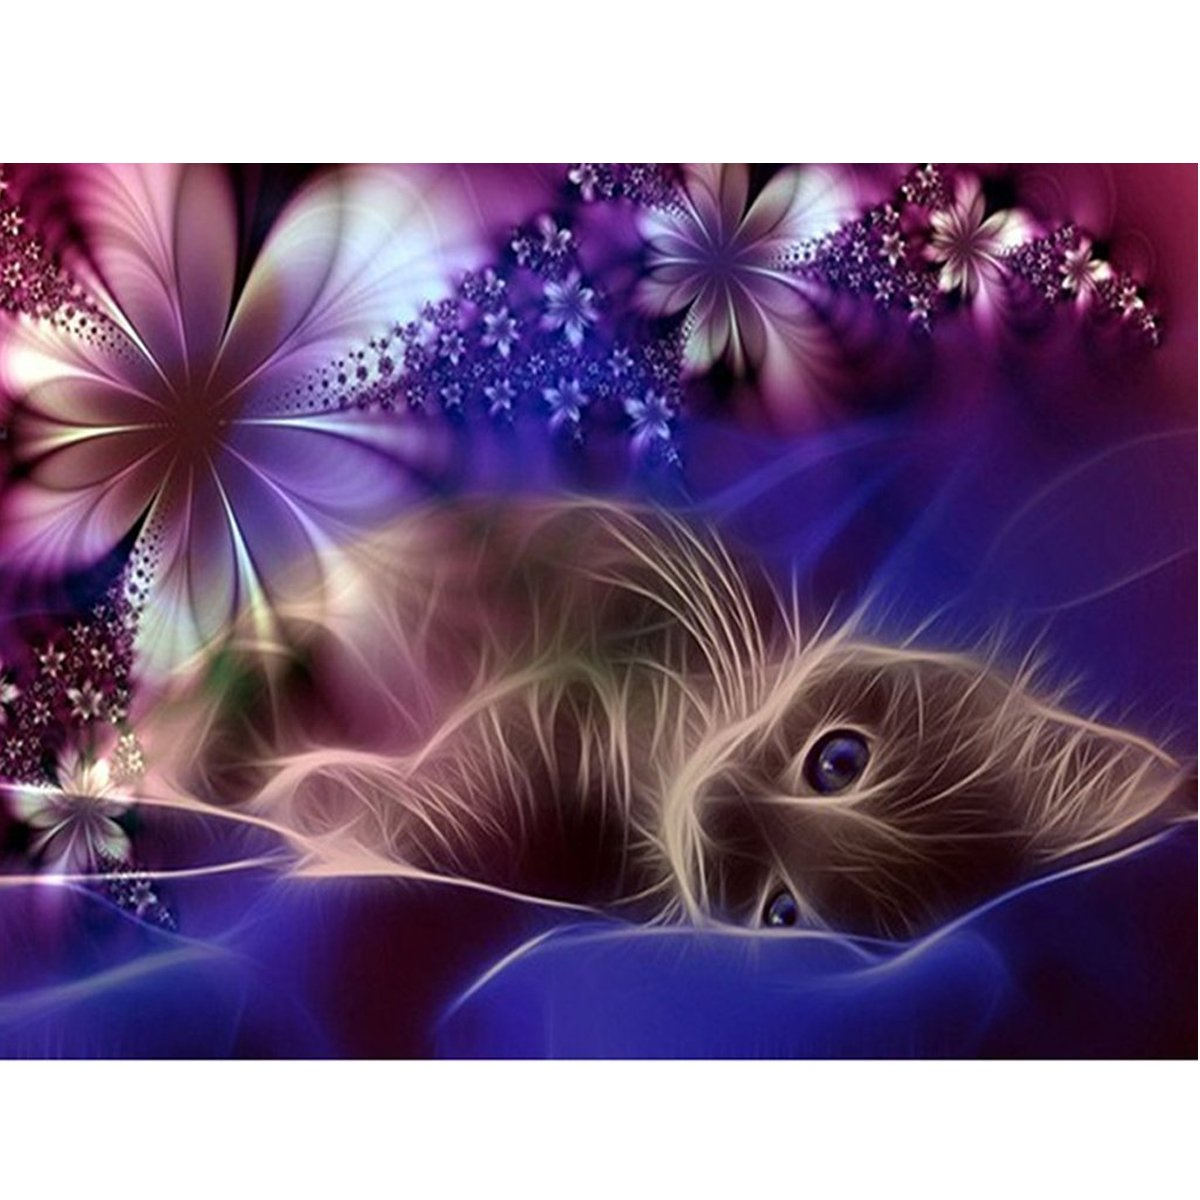 5D DIY Diamond Painting Kit Full Drill for Adults Crystal Rhinestone Embroidery Cross Stitch Arts Craft Canvas Wall Decor Moon Cat